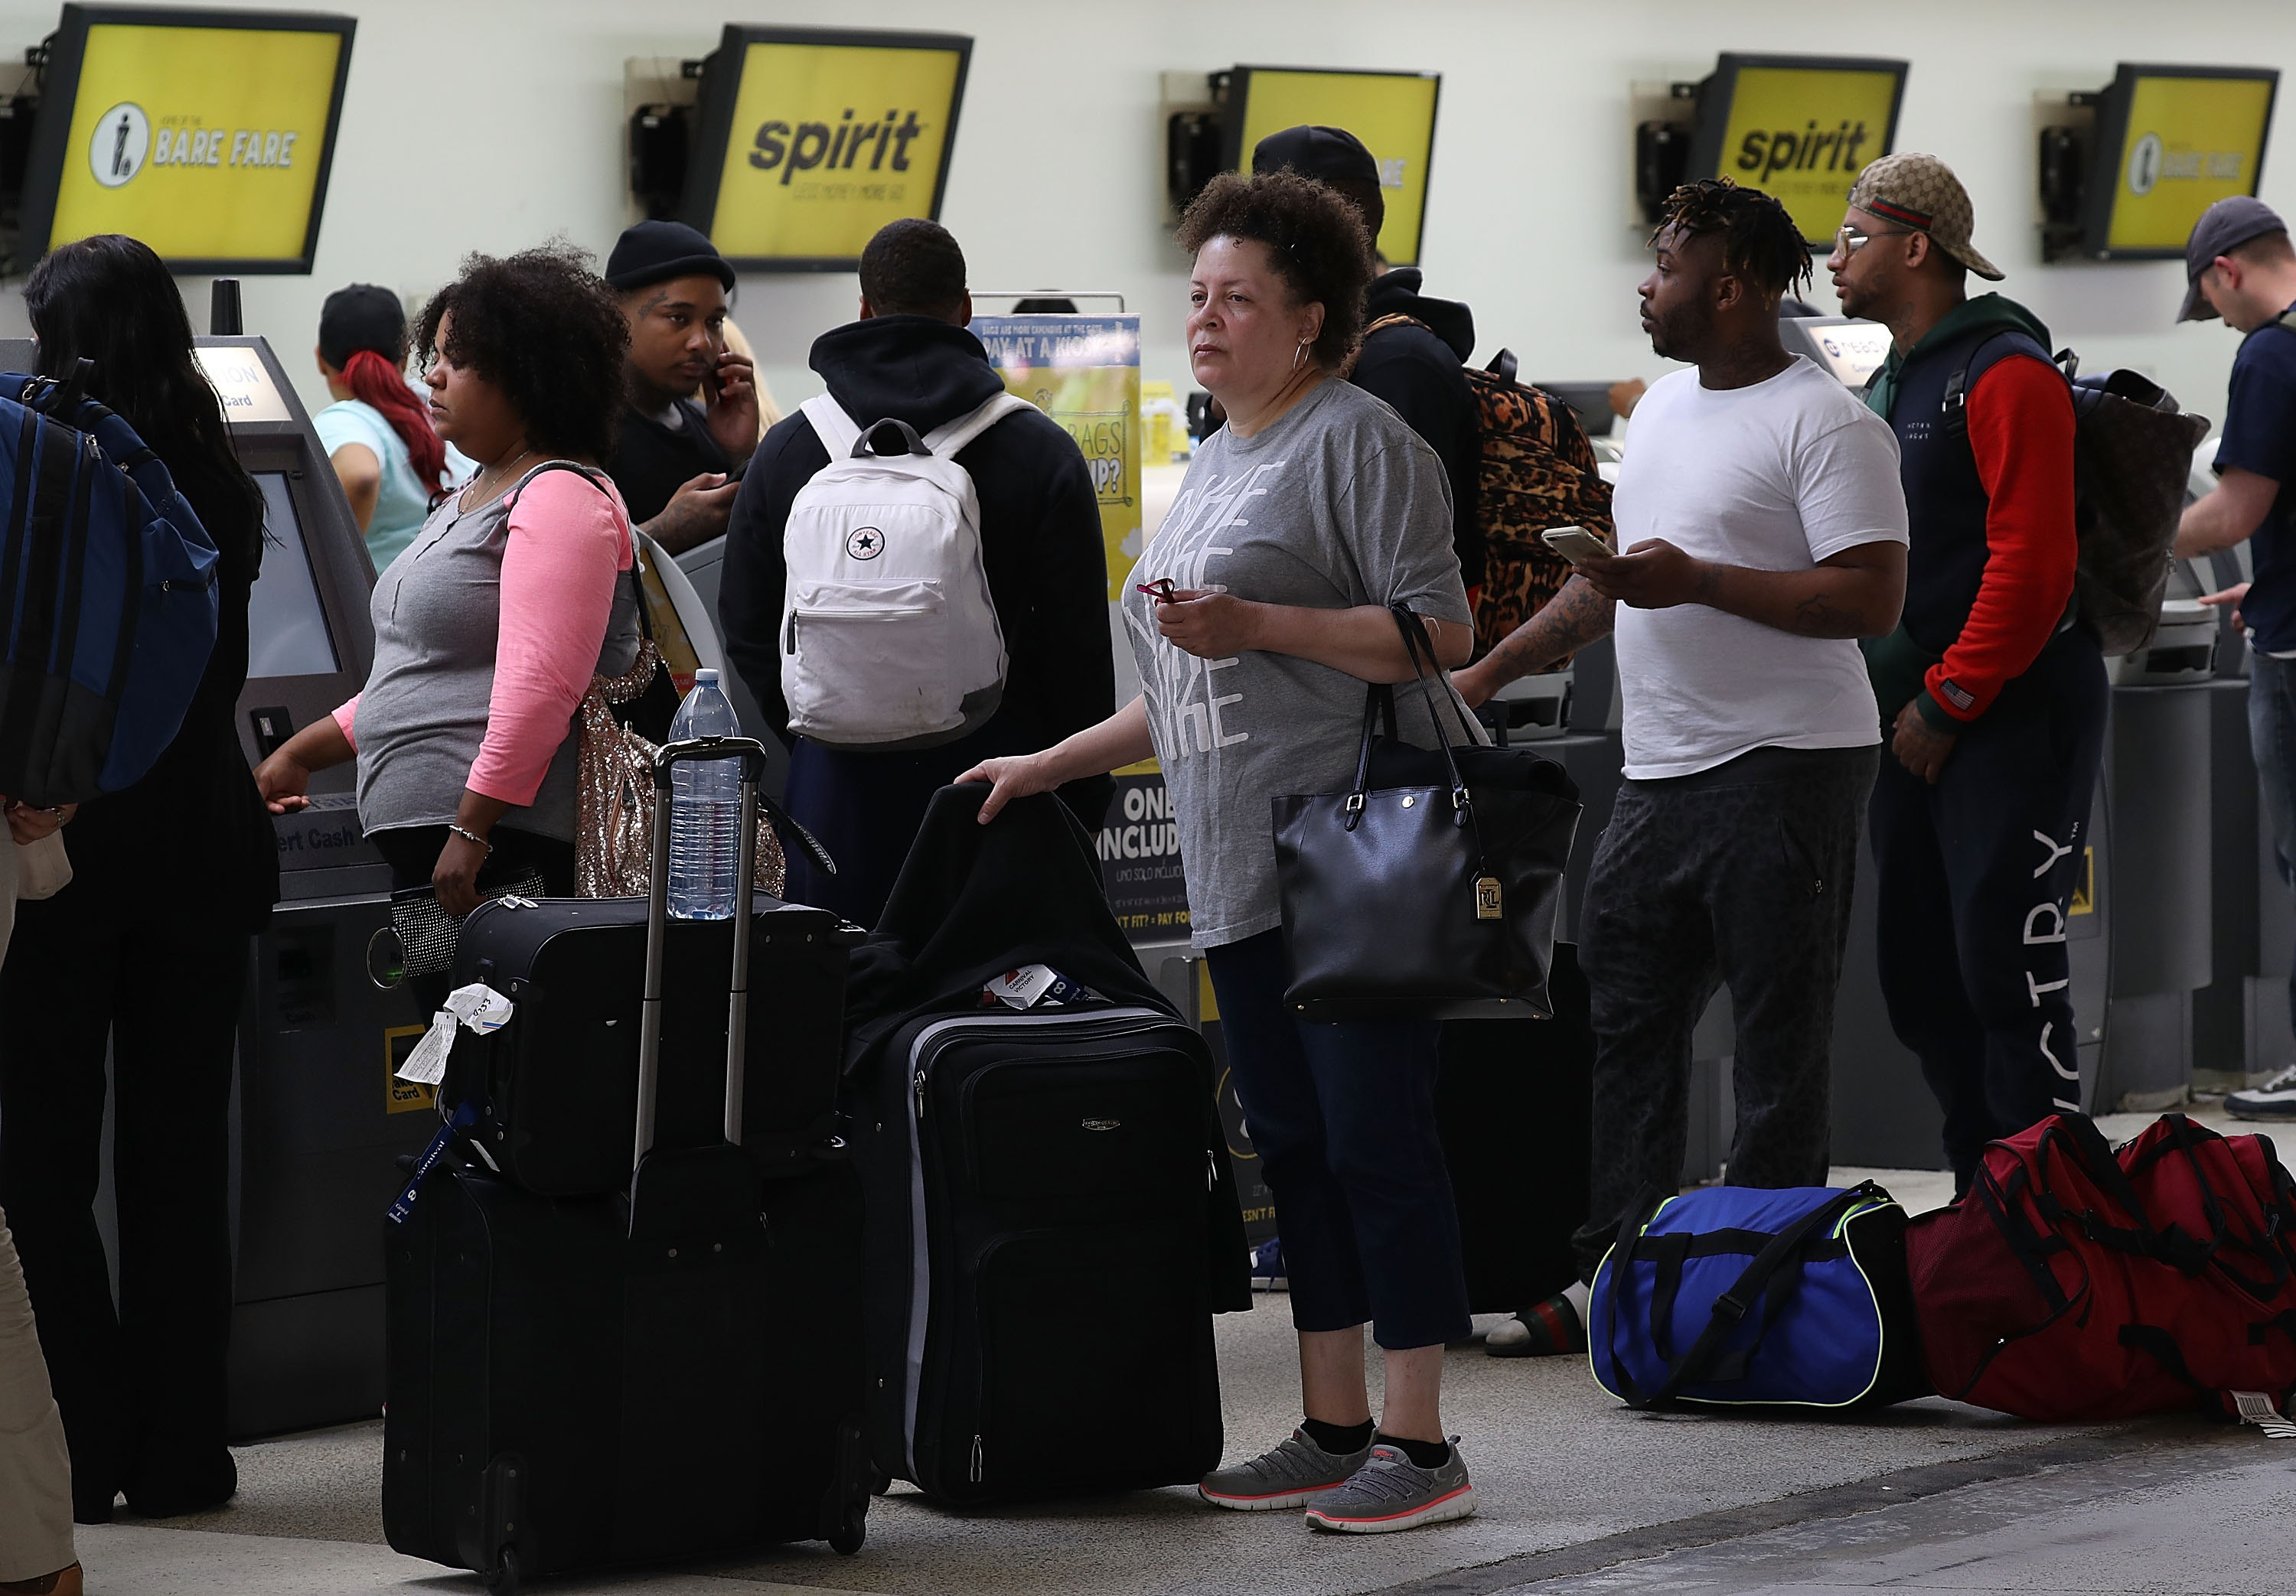 People stand in line to check in at the Spirt Airlines counter at the Fort Lauderdale-Hollywood International Airport on Tuesday in Fort Lauderdale, Fla. Yesterday a chaotic scene erupted at the Spirit Airlines counter after flights were canceled which led to passengers getting irate and the police had to move in to restore order. (Joe Raedle/Getty Images)